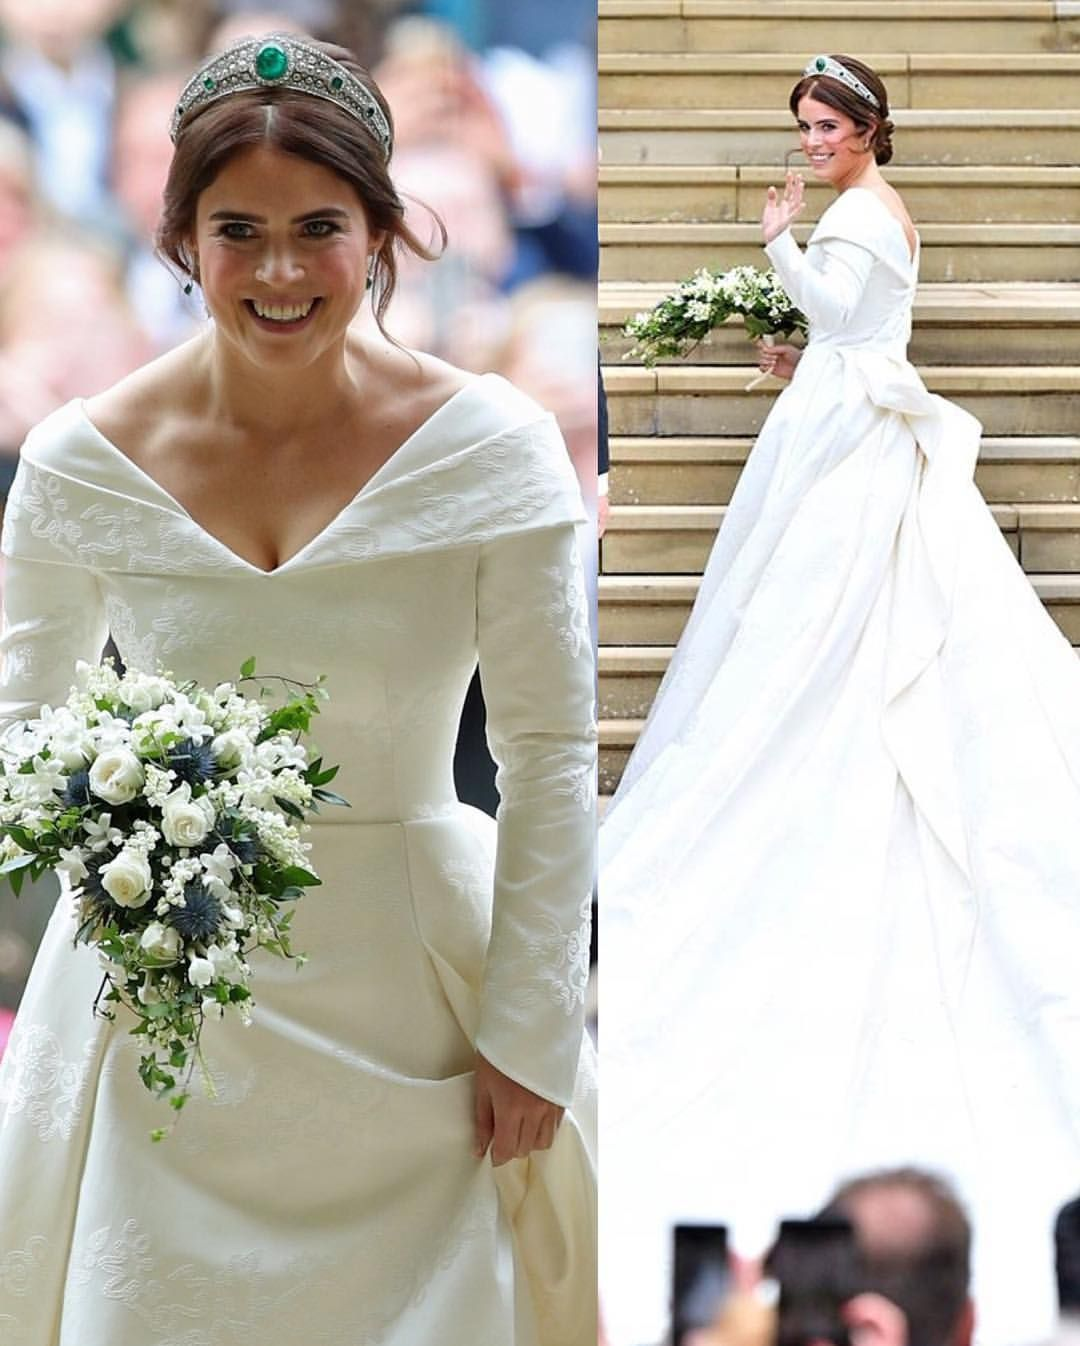 New The Wedding Of Princess Eugenie Of York And Jack Brooksbank 12th October The Bride Princess Eug Eugenie Wedding Royal Wedding Themes Royal Brides